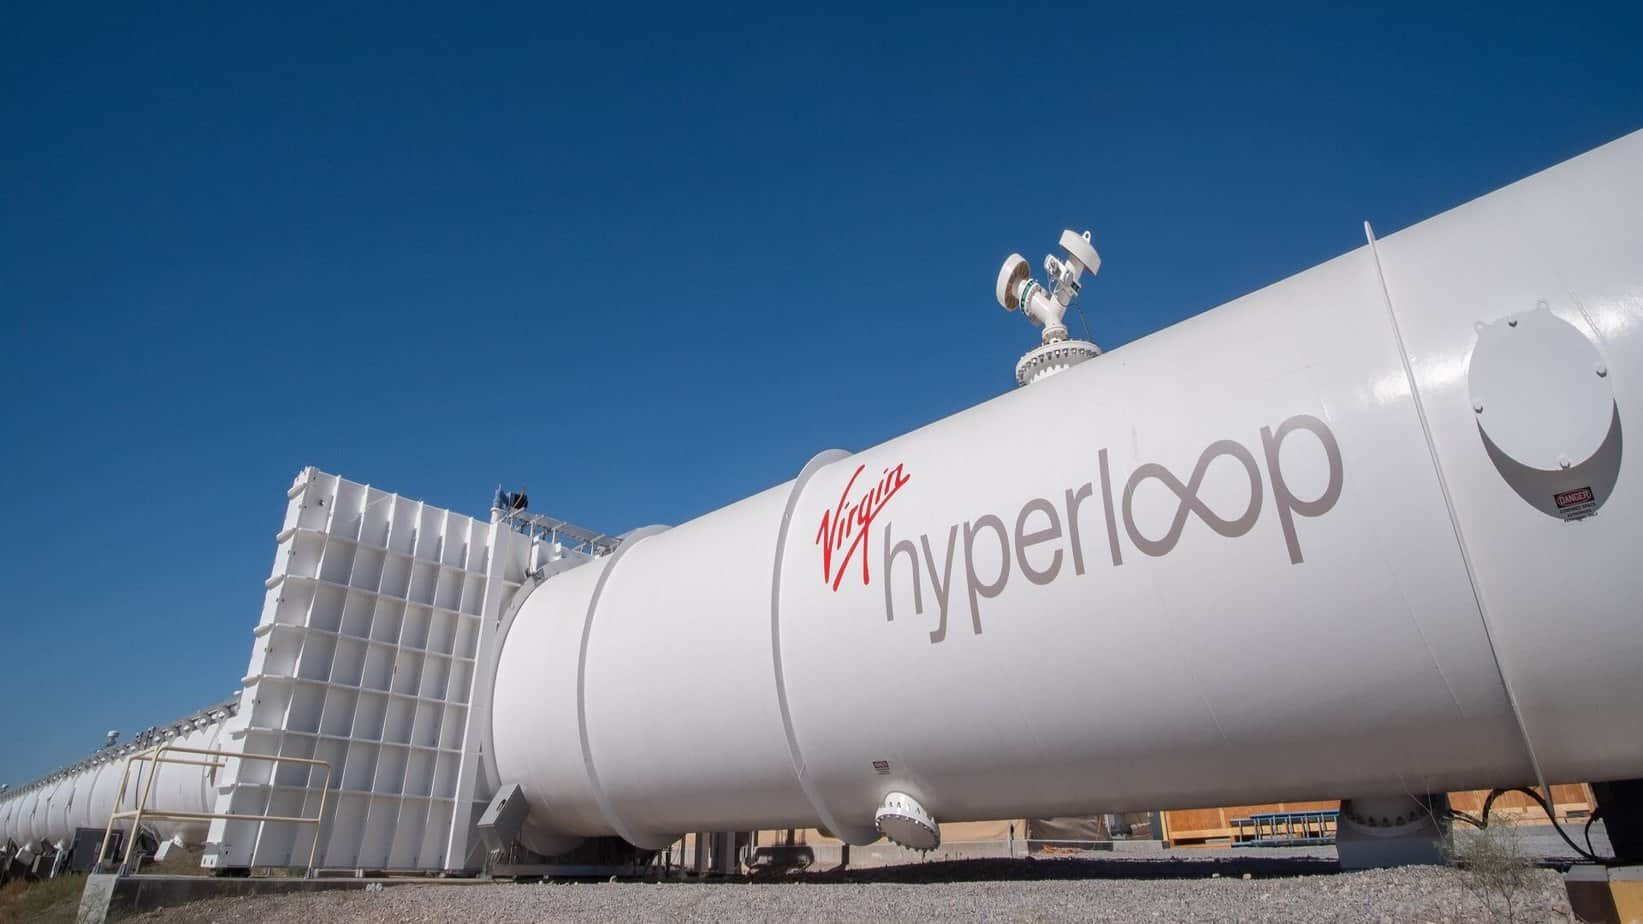 Virgin Hyperloop wants to get you excited about riding its ultra-fast pods